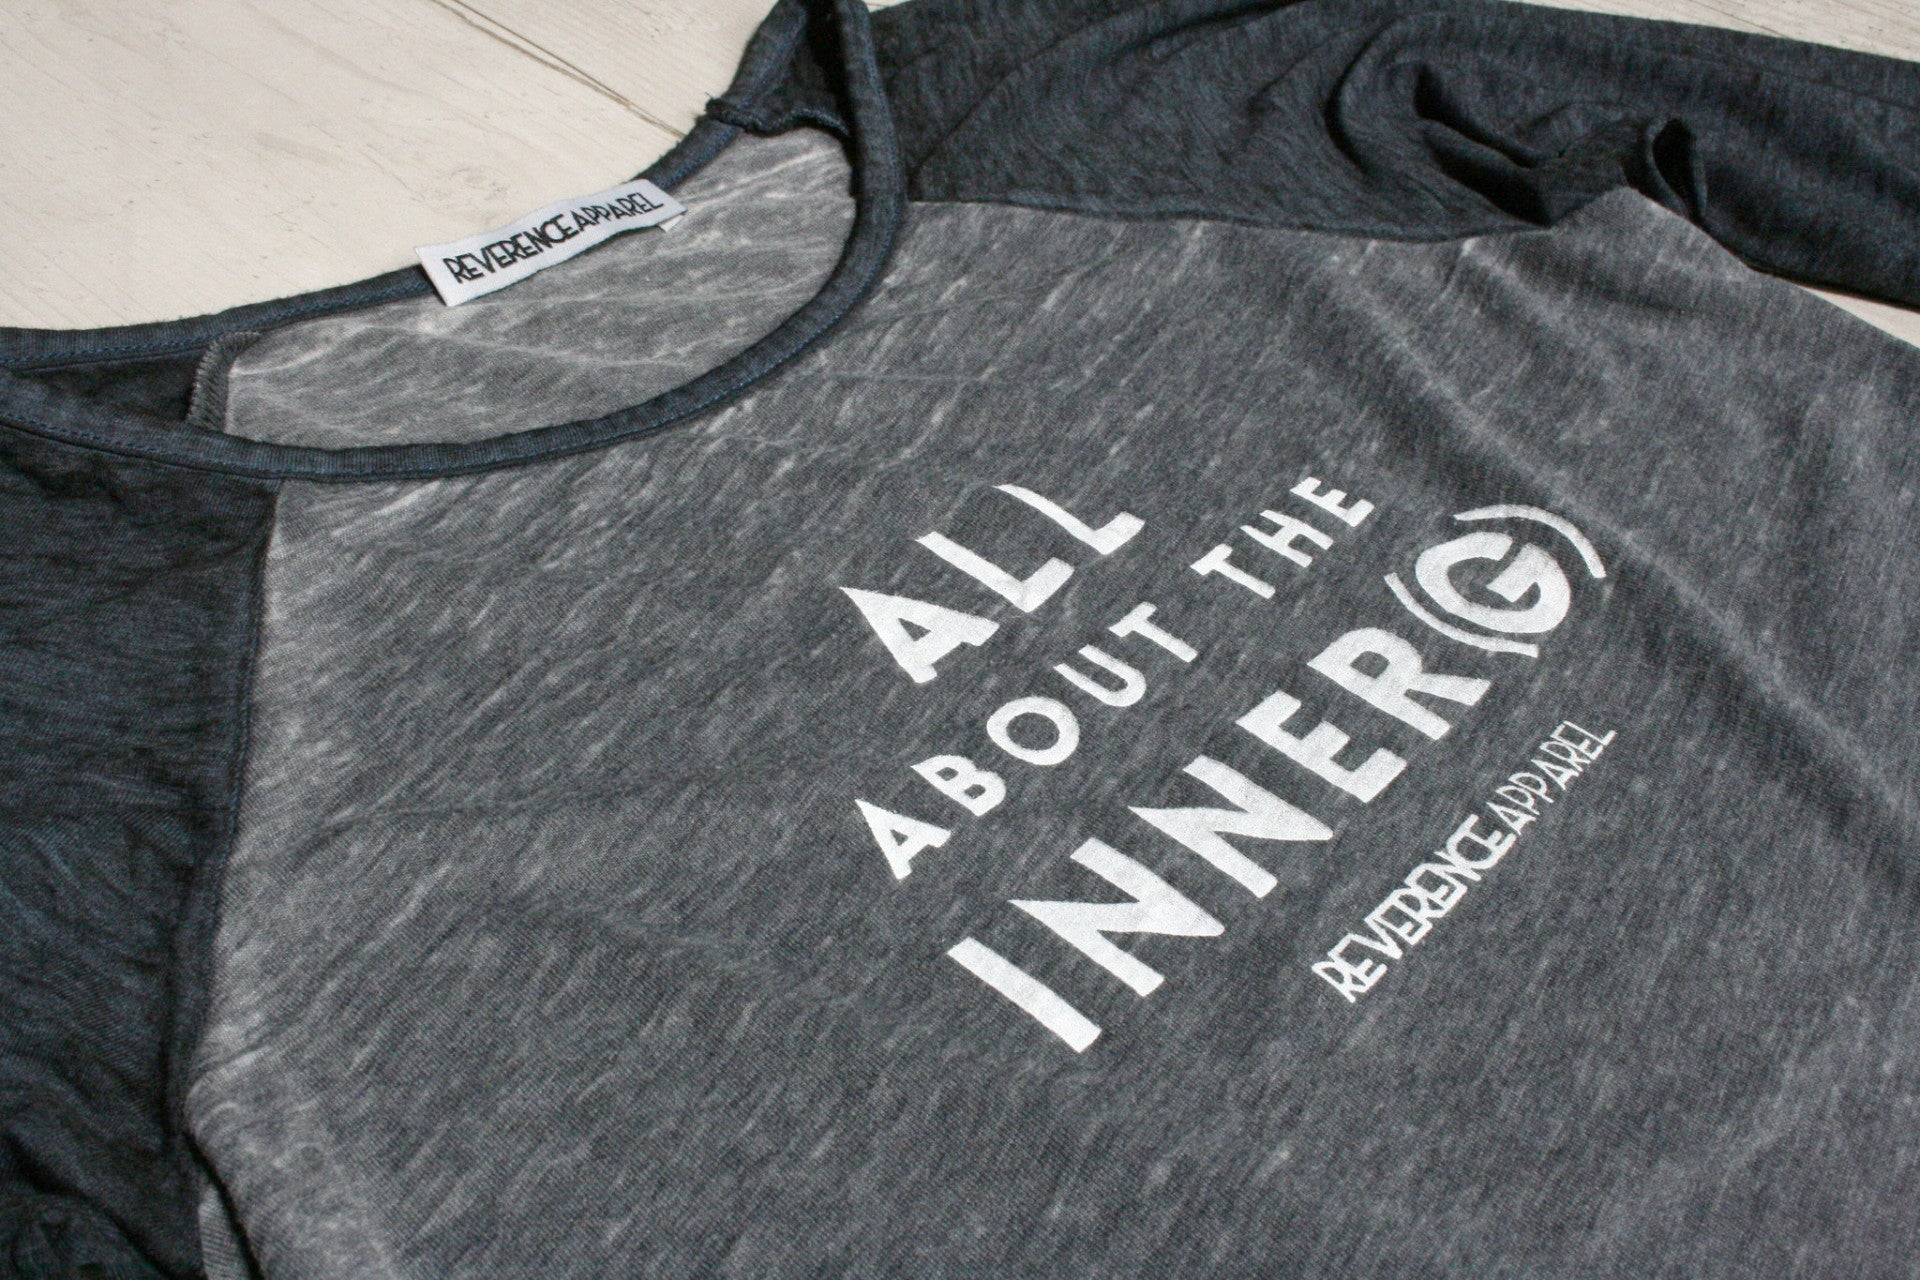 ALL ABOUT THE INNER (G) RAGLAN BASEBALL TEE REVERENCE APPAREL